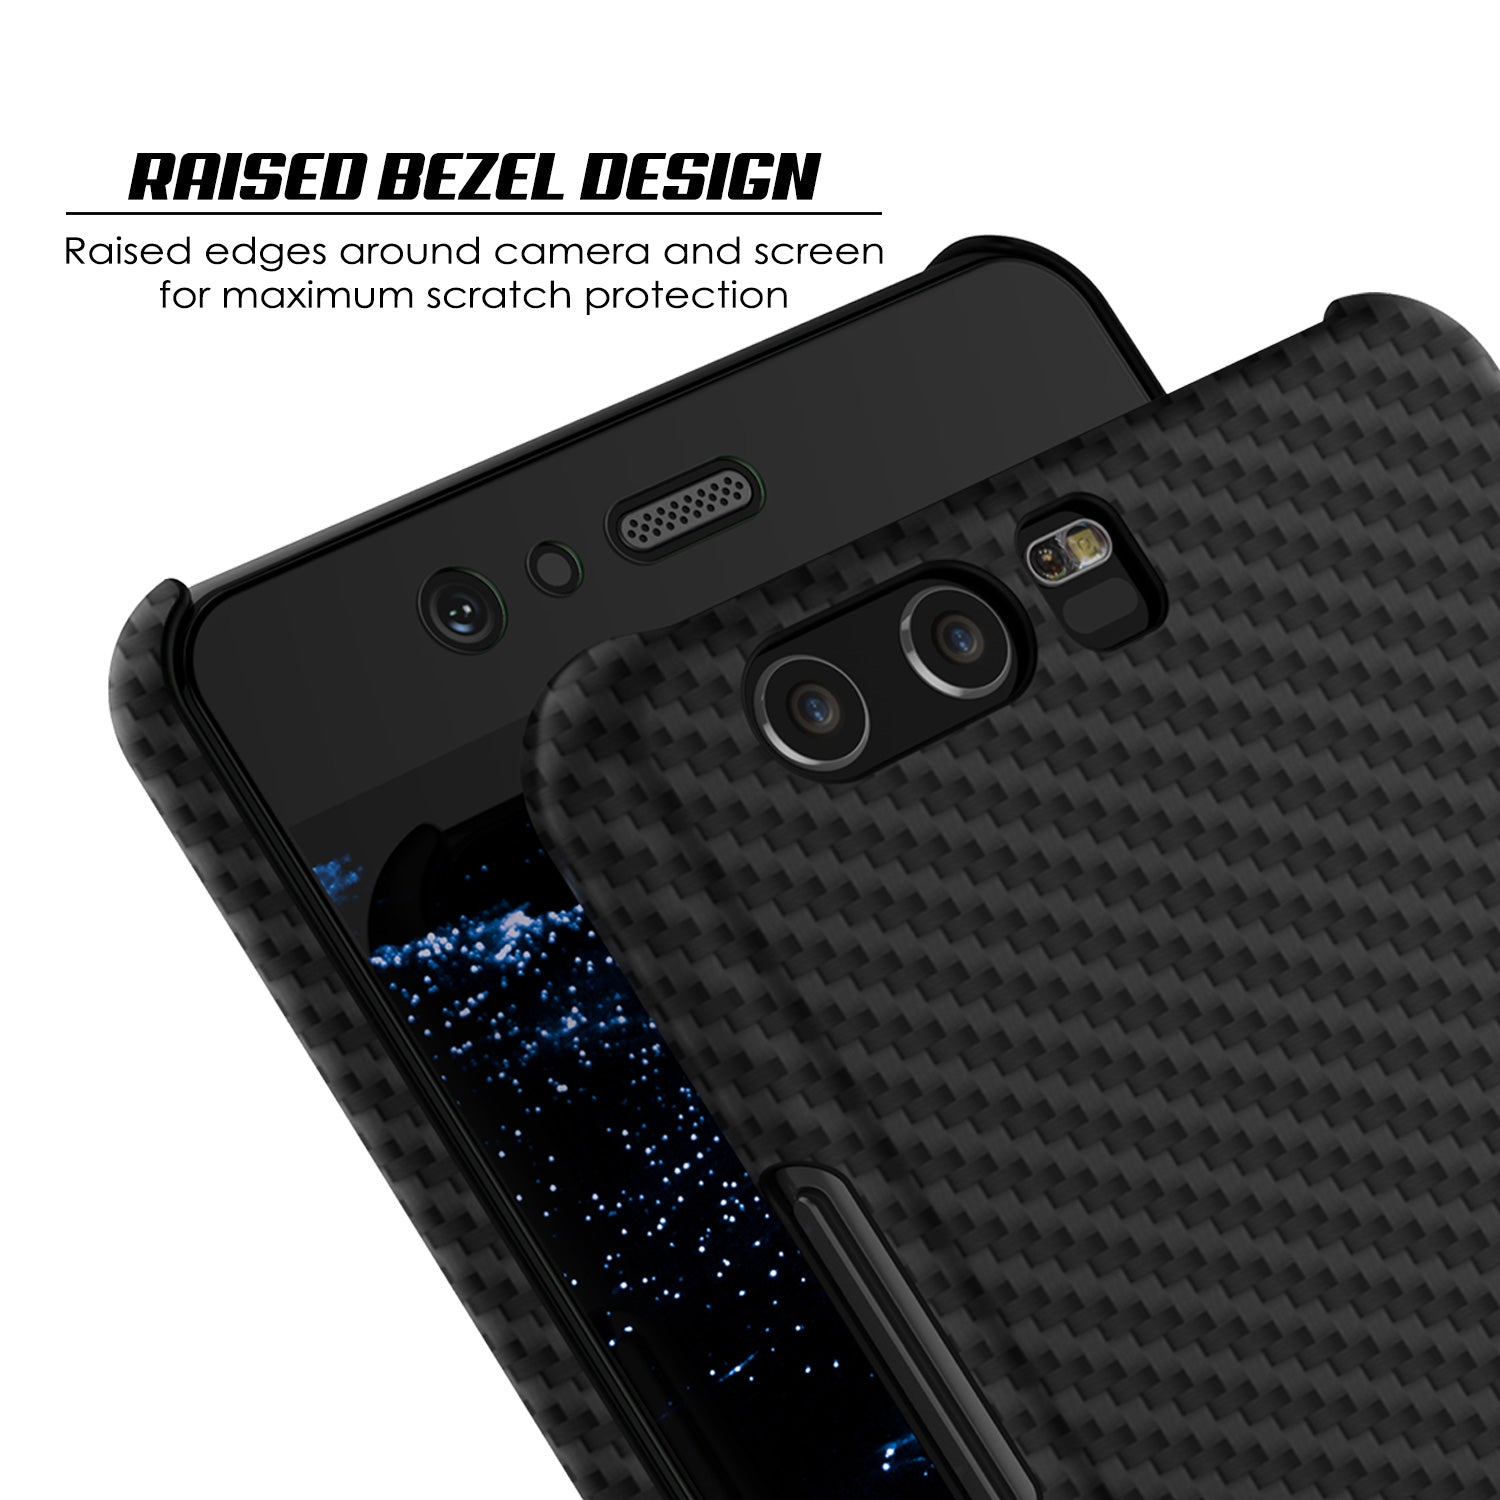 new concept 82706 a7a81 Huawei P10 Case, Punkcase CarbonShield, Heavy Duty [Jet Black] Cover